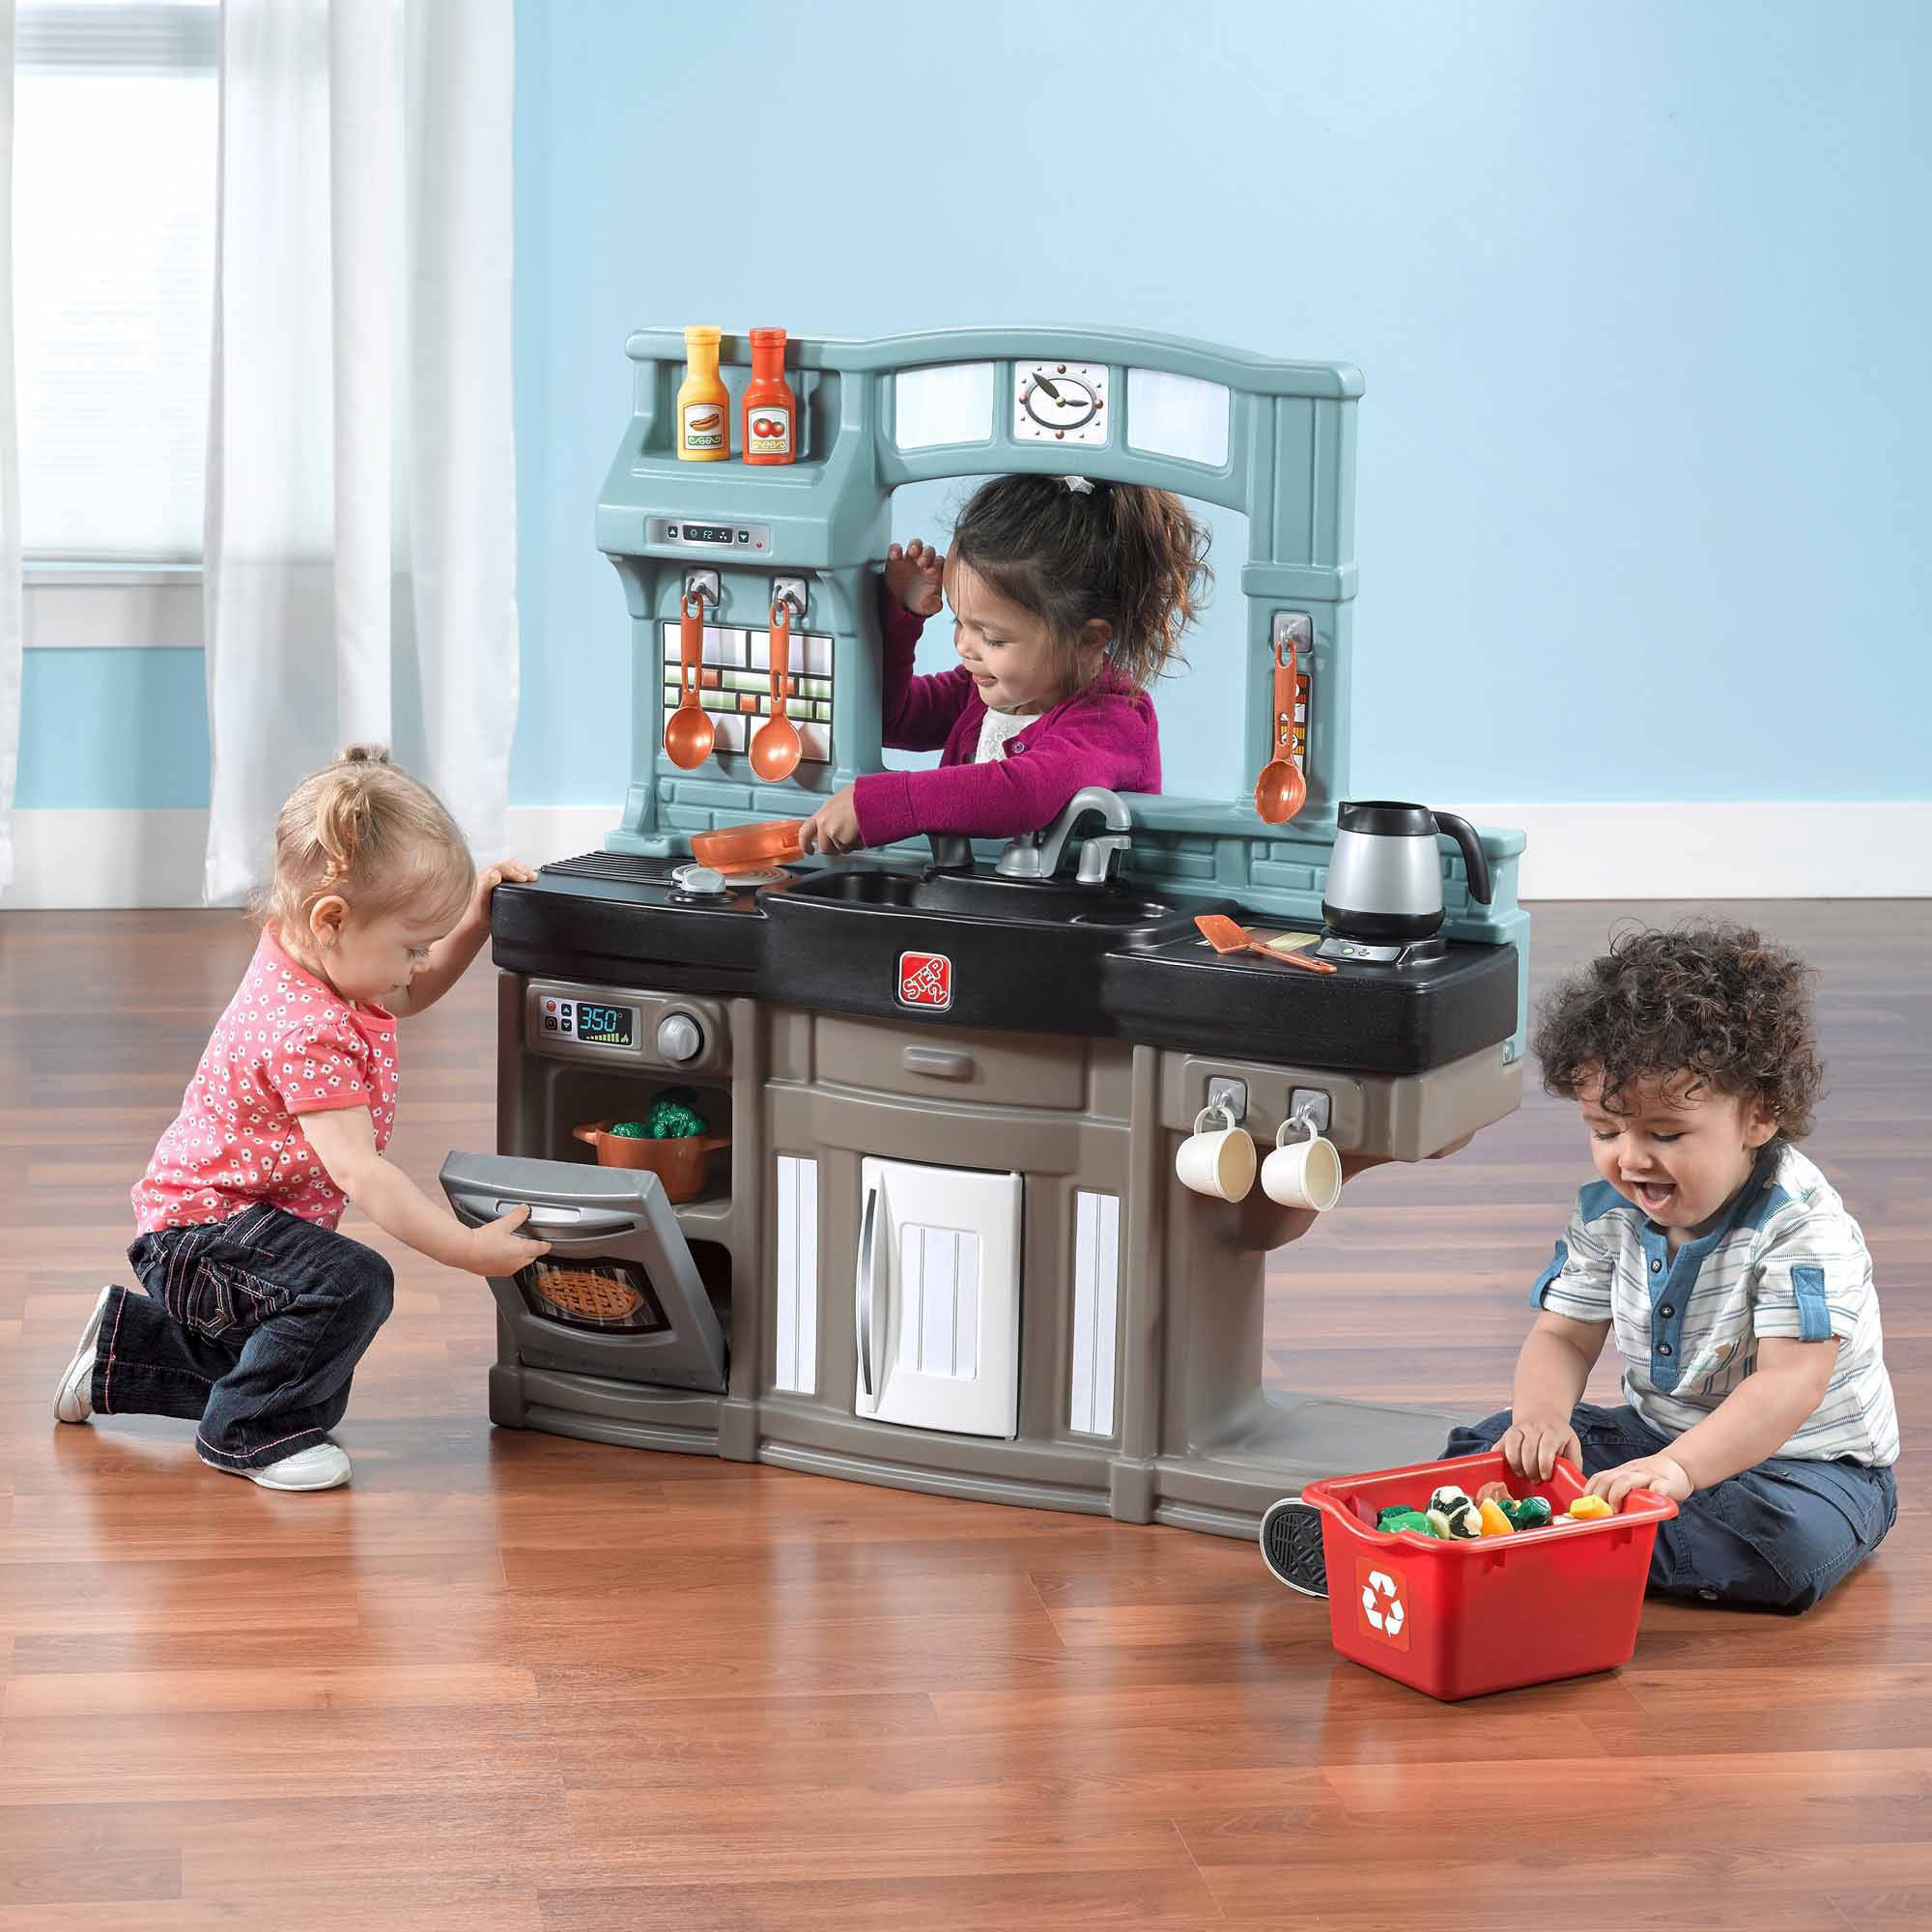 costco kitchen play set design ideas best playsets for toddlers toy sets